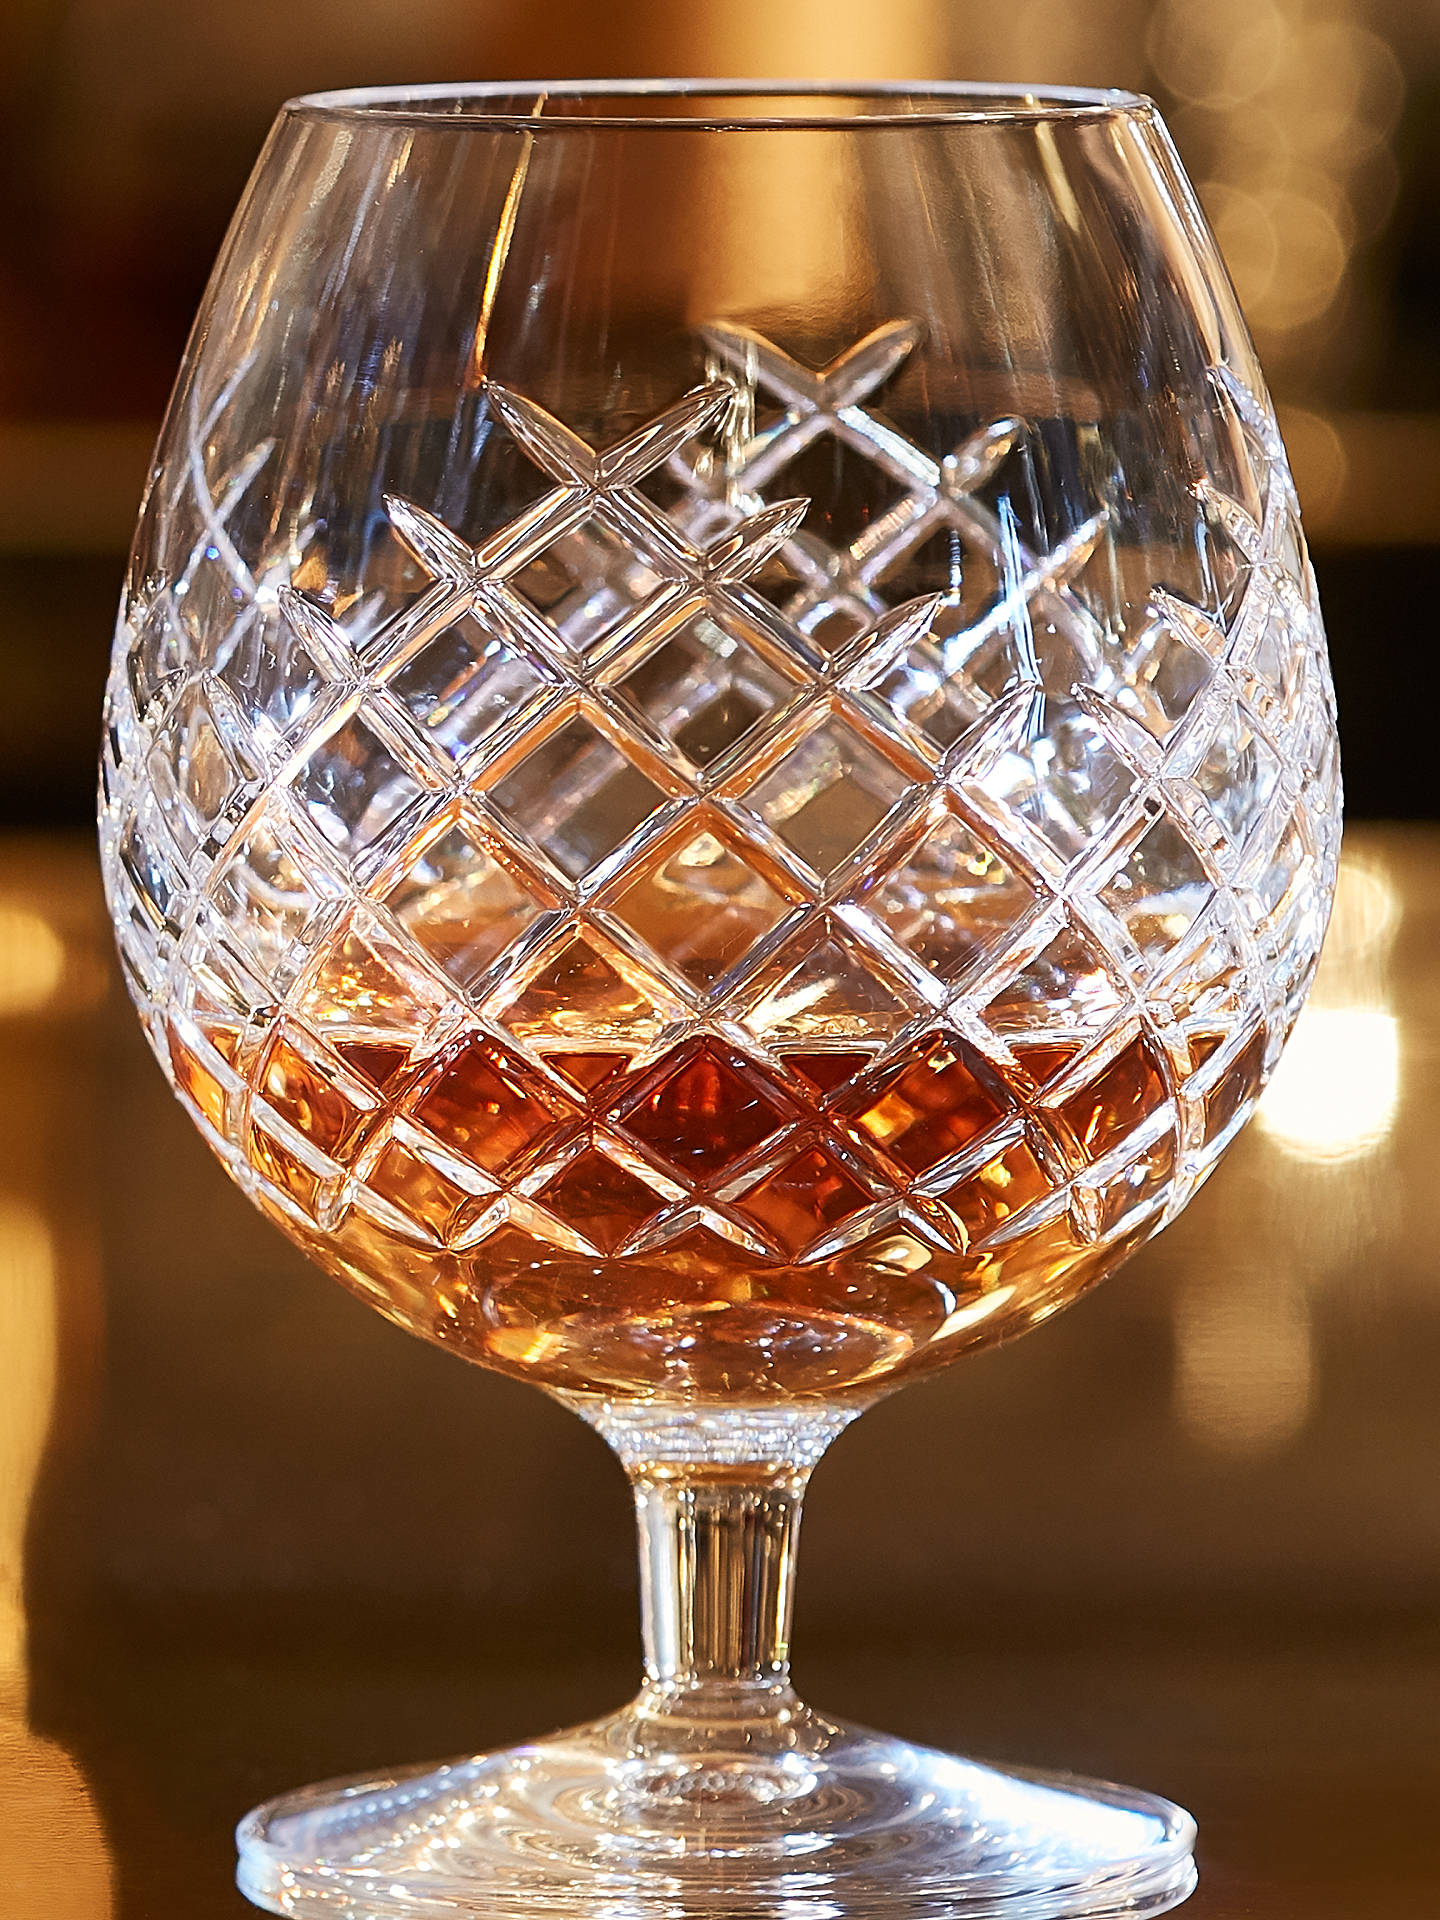 BuySoho Home Barwell Cut Lead Crystal Brandy Glasses, 530ml, Set of 2 Online at johnlewis.com